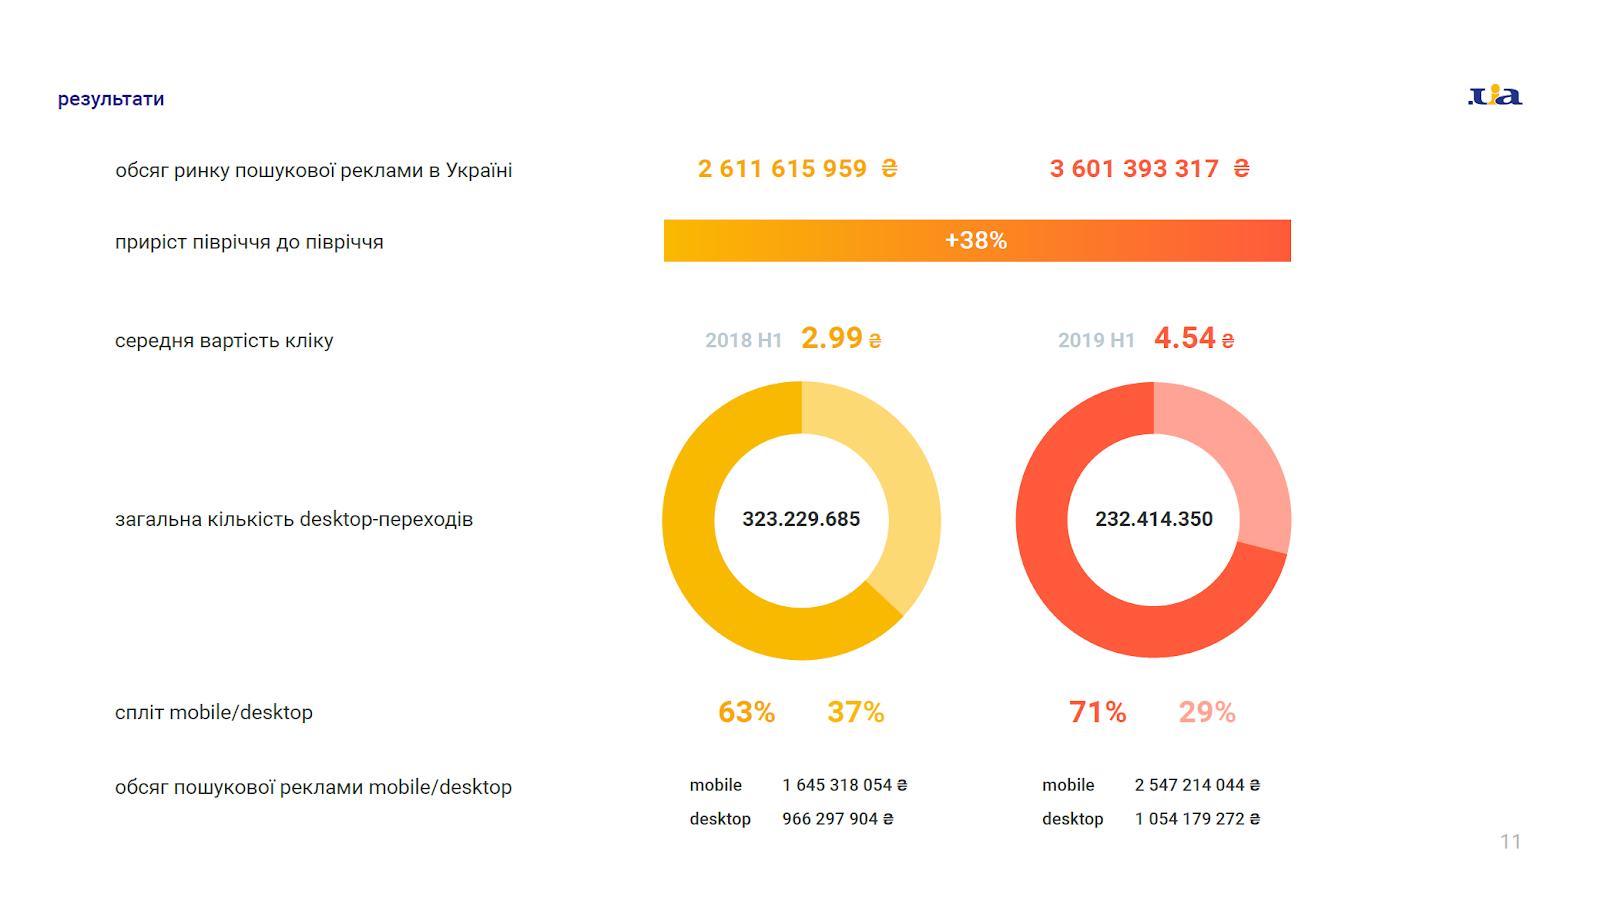 Paid_search_in_UA_2019H1_Summary.PNG (131 KB)